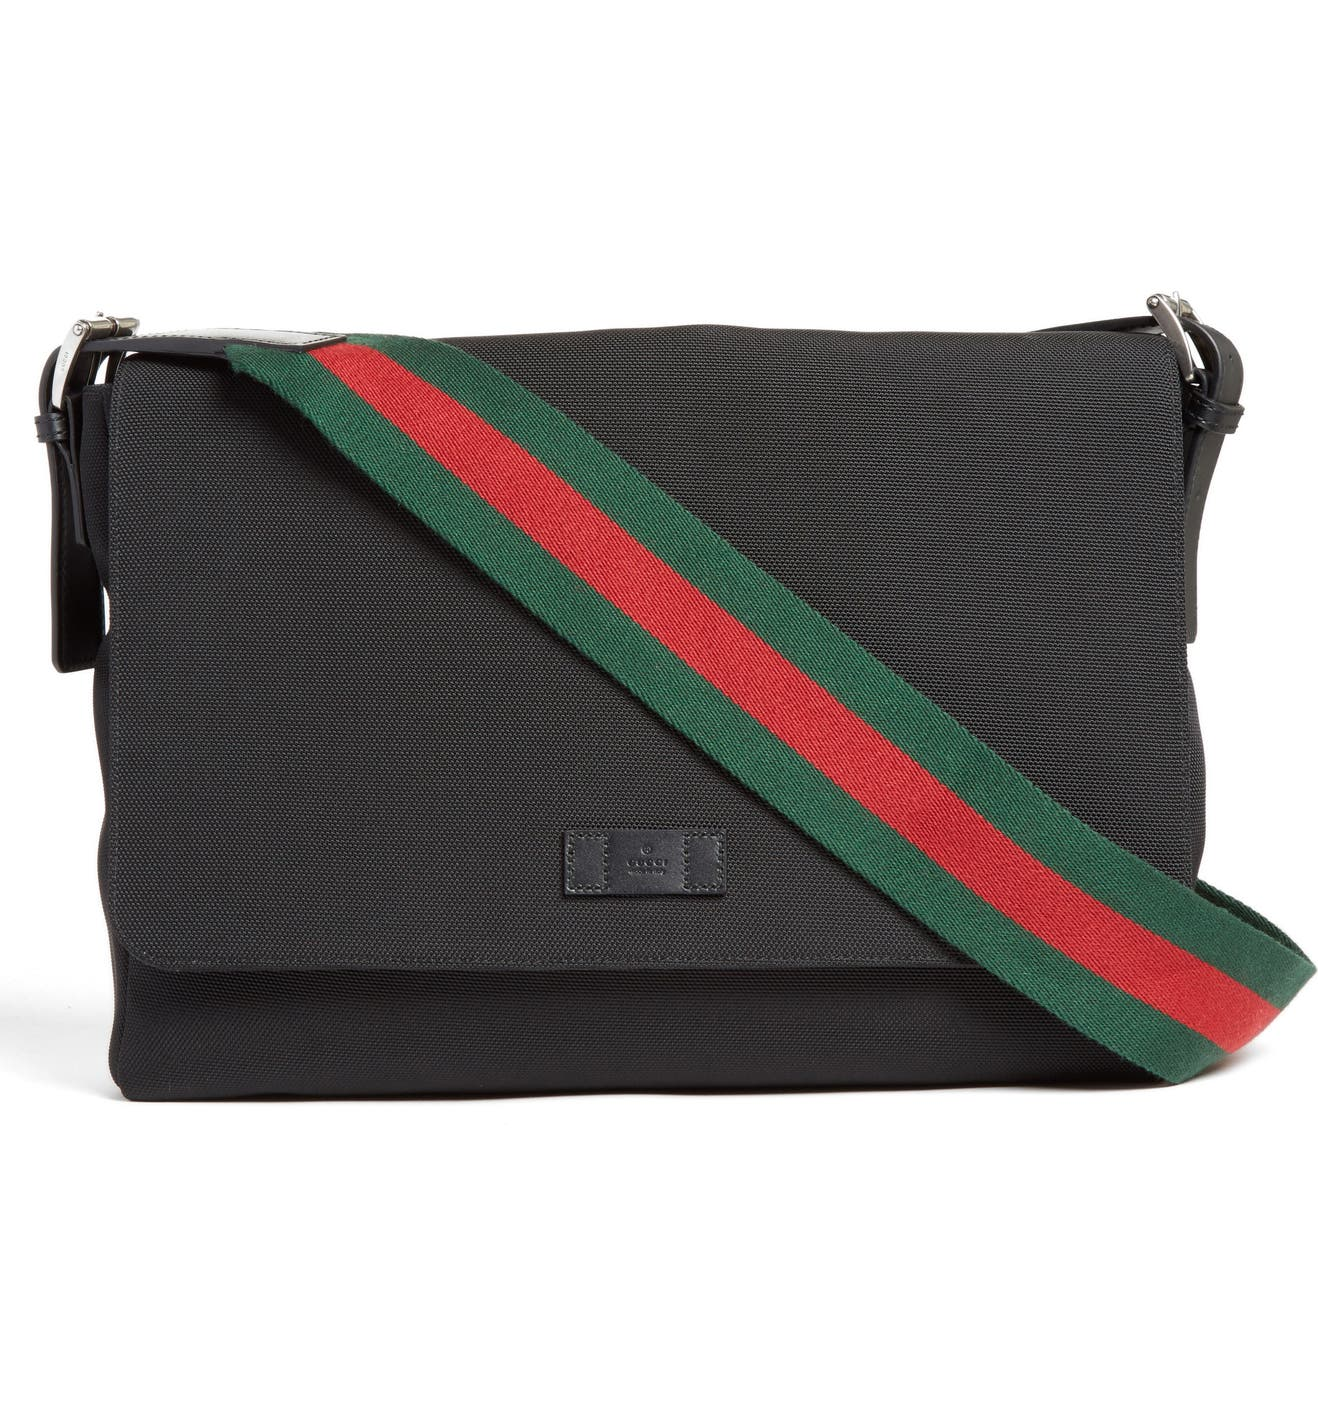 6d24bfda0f20 Gucci Techno Canvas Messenger Bag | Nordstrom